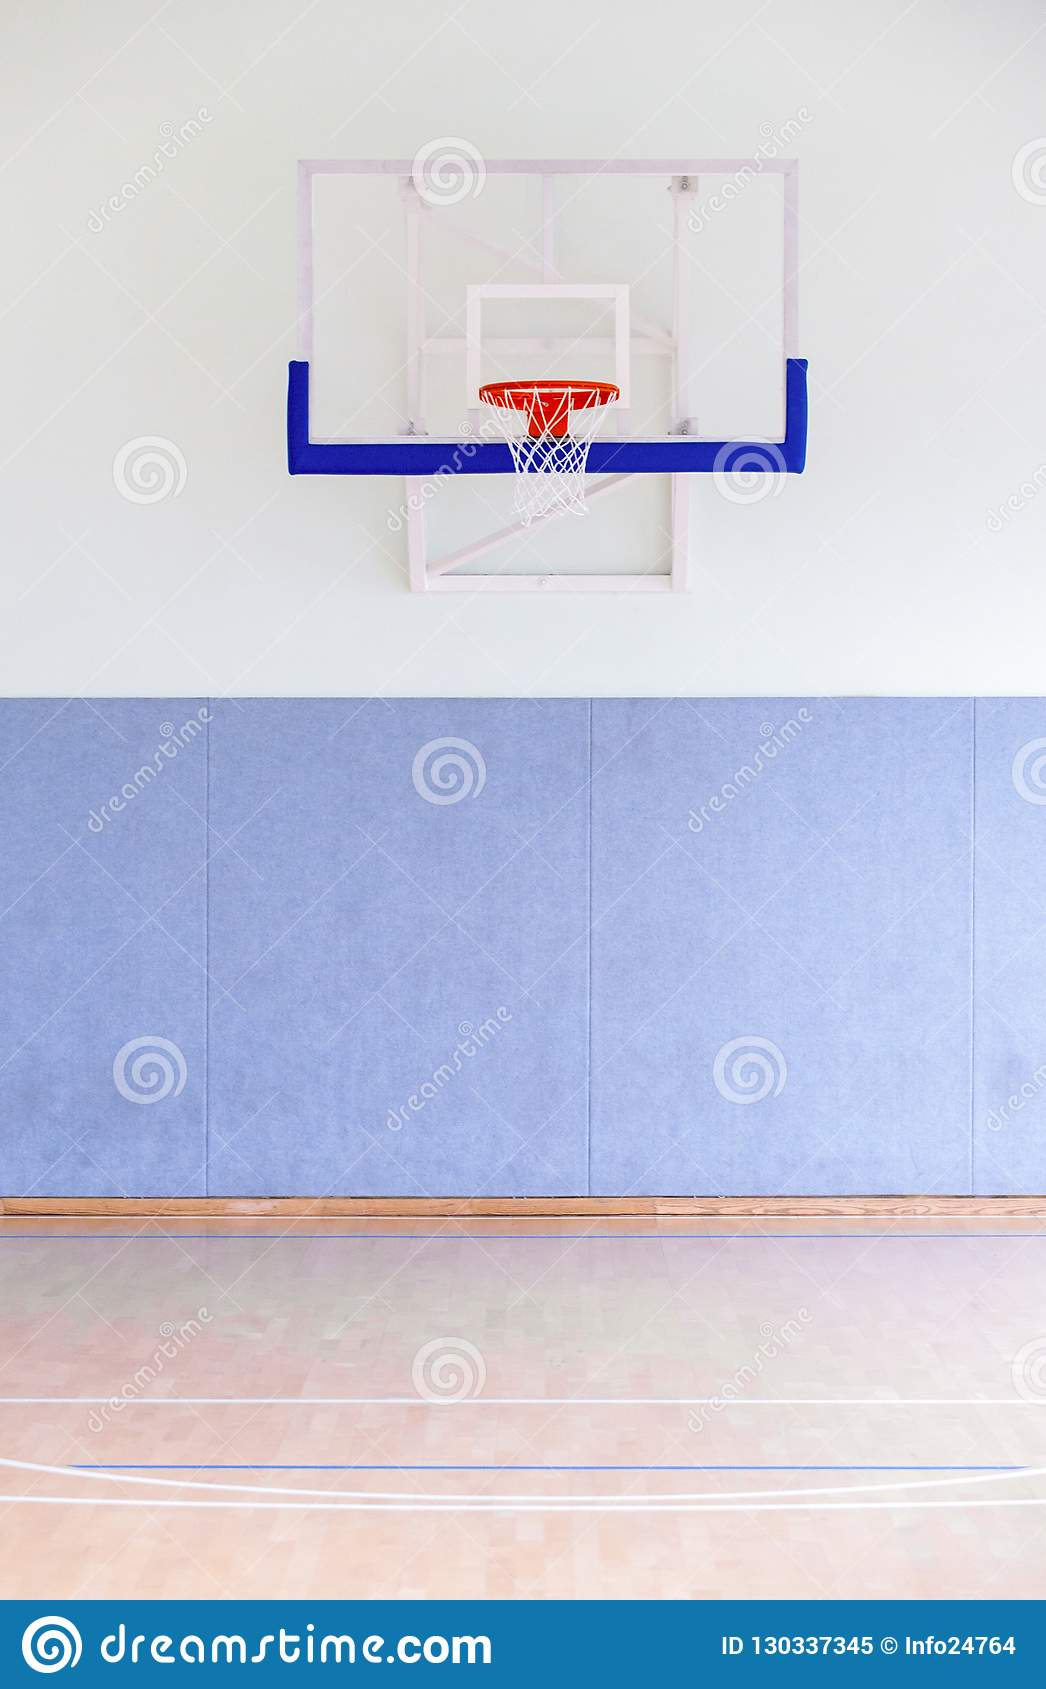 Basketball hoop cage, isolated large backboard closeup, new outd